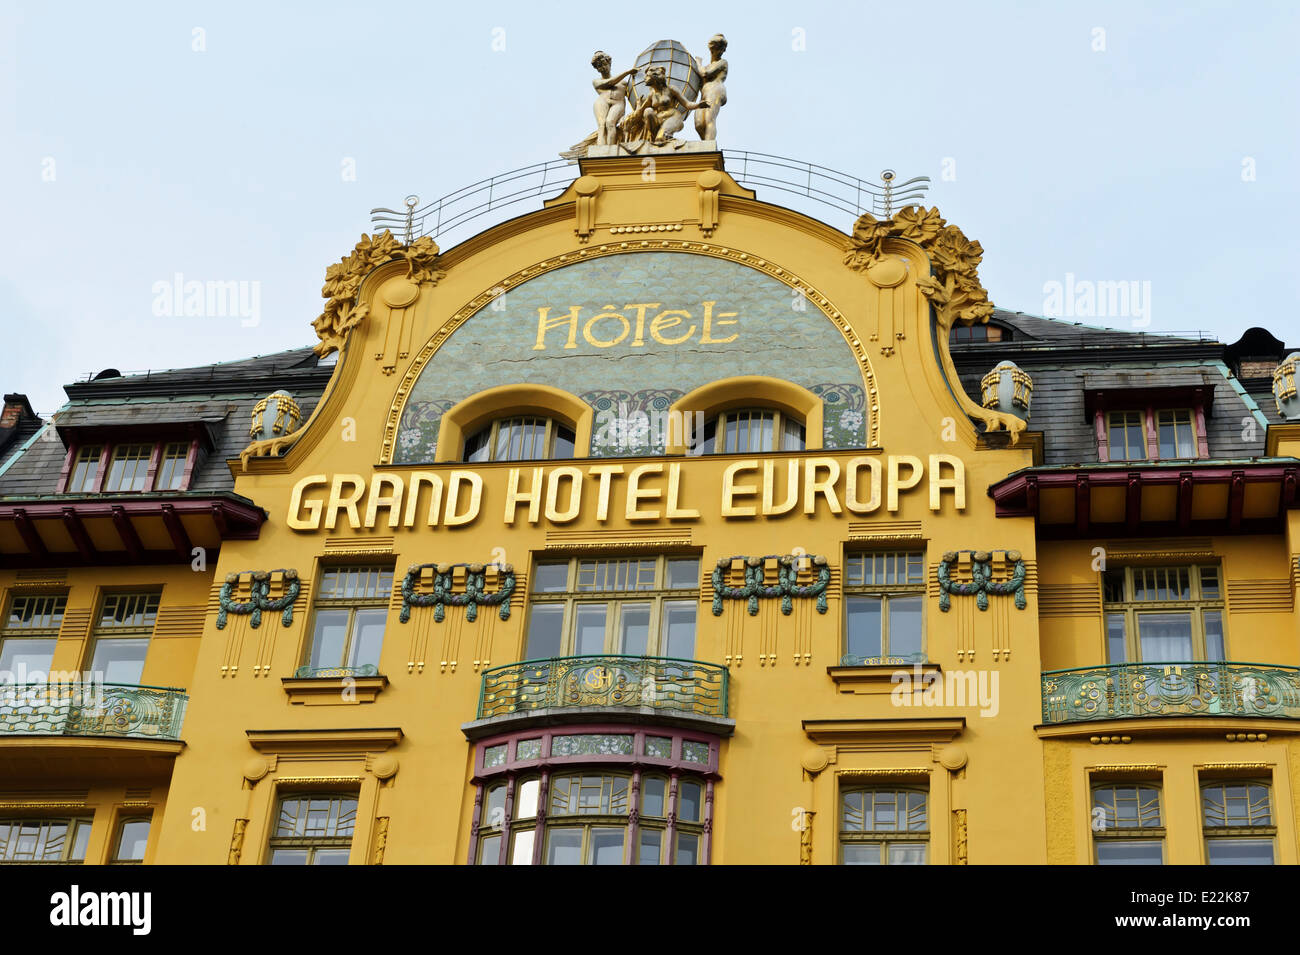 grand hotel europa stock photos grand hotel europa stock images alamy. Black Bedroom Furniture Sets. Home Design Ideas